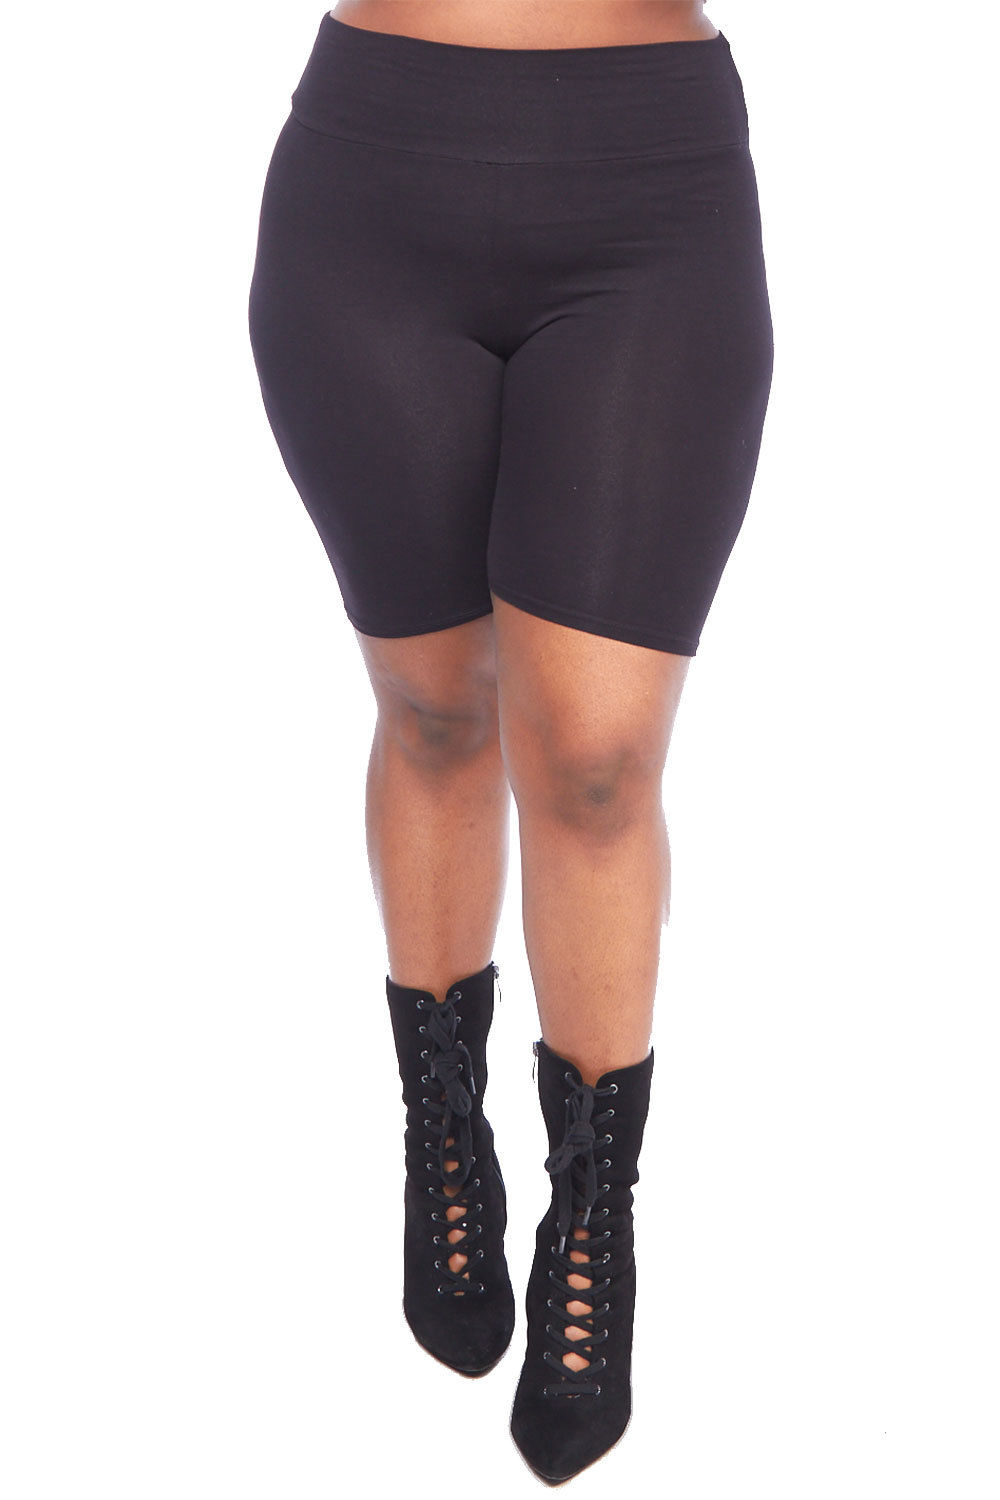 Womens Plus Waistband Elastic Solid Knee Length Short Leggings XP52105-XL-Black